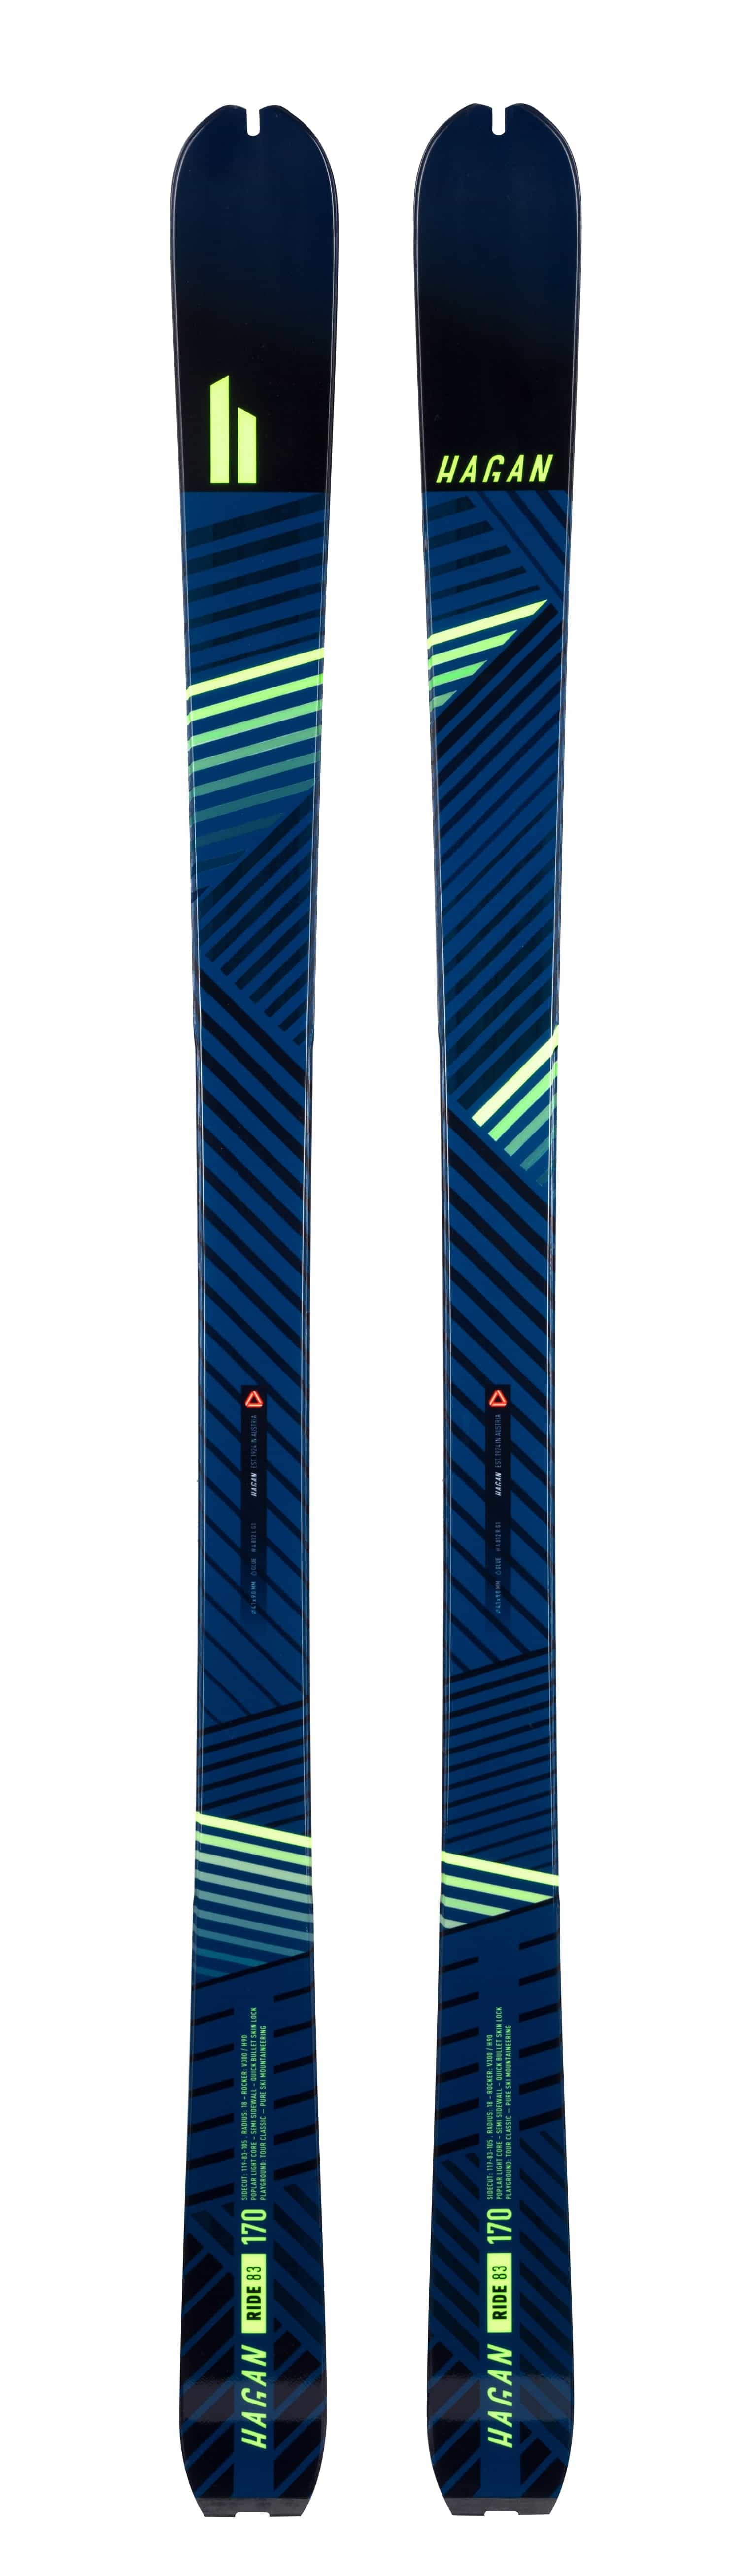 Ride 83 - $379.99 with discount, Skis - Hagan Ski Mountaineering Alpine Ski Touring Backcountry Gear